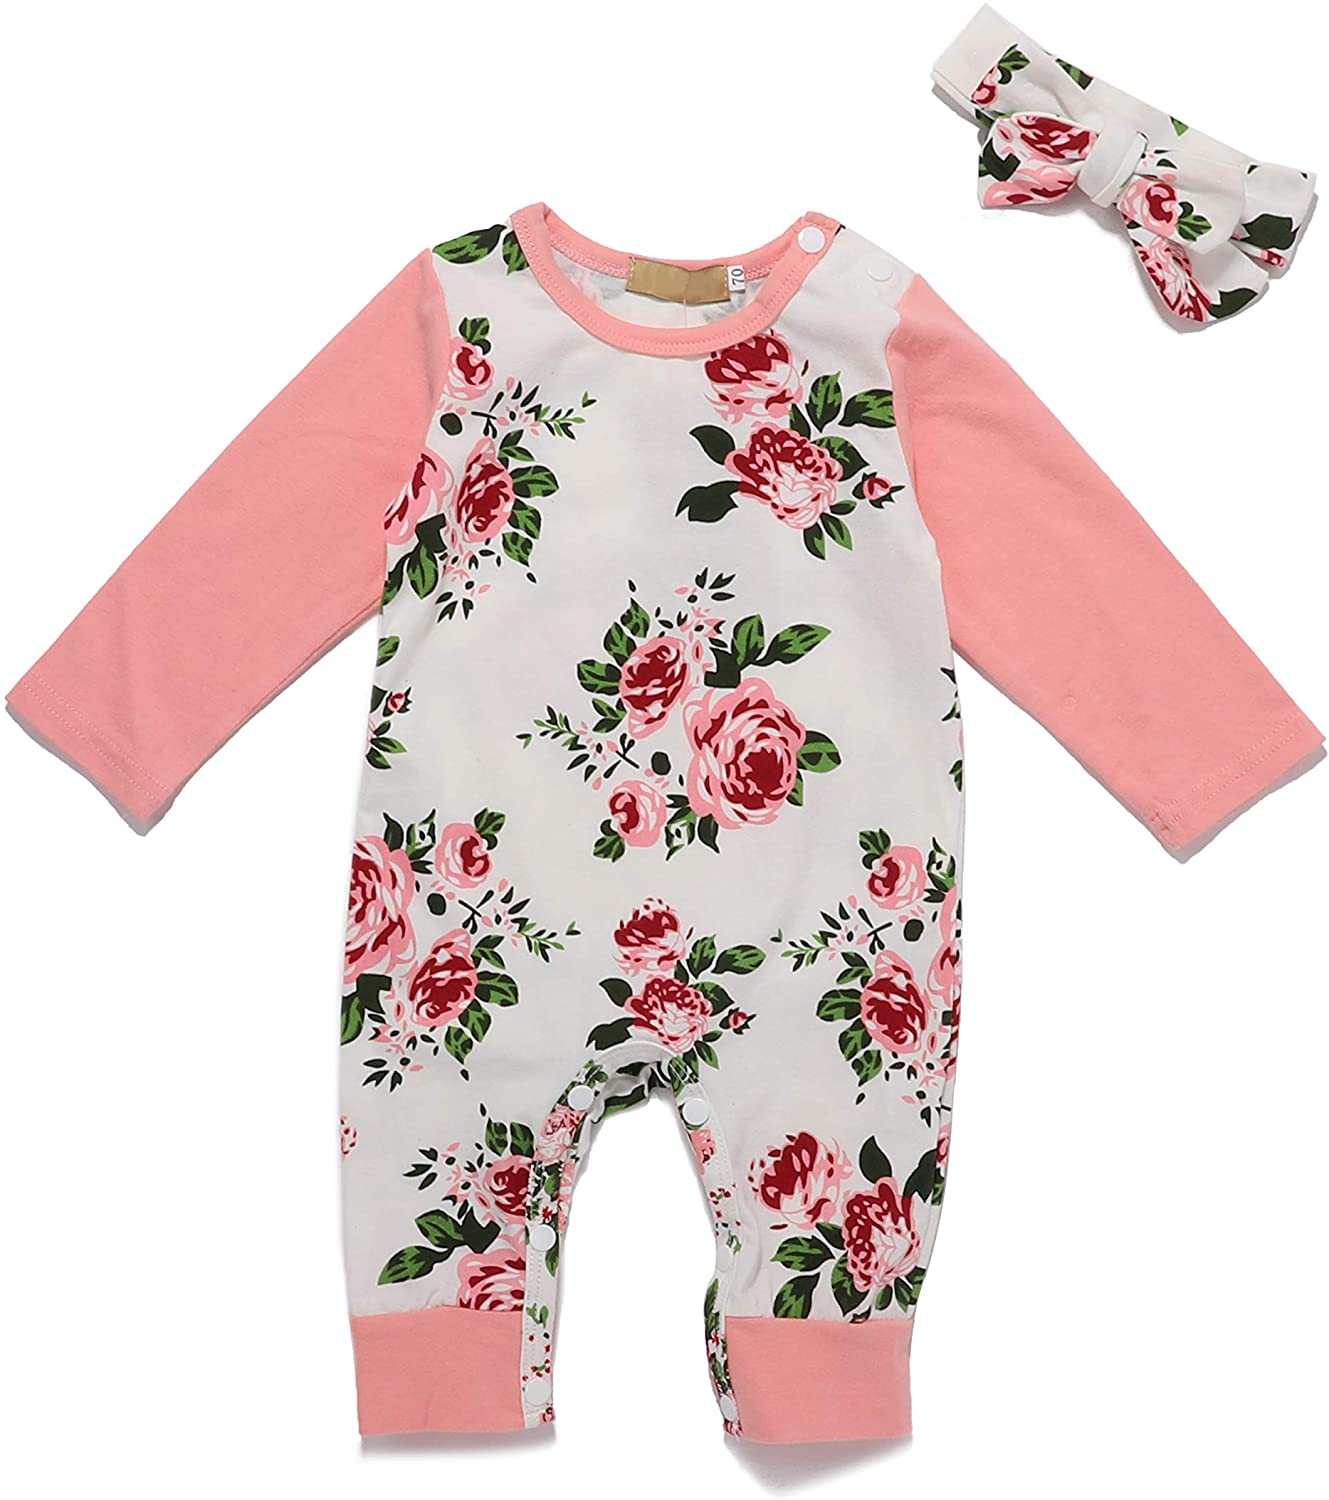 xiayu Newborn Girl Clothes 0-3 Months Baby Girl Clothes